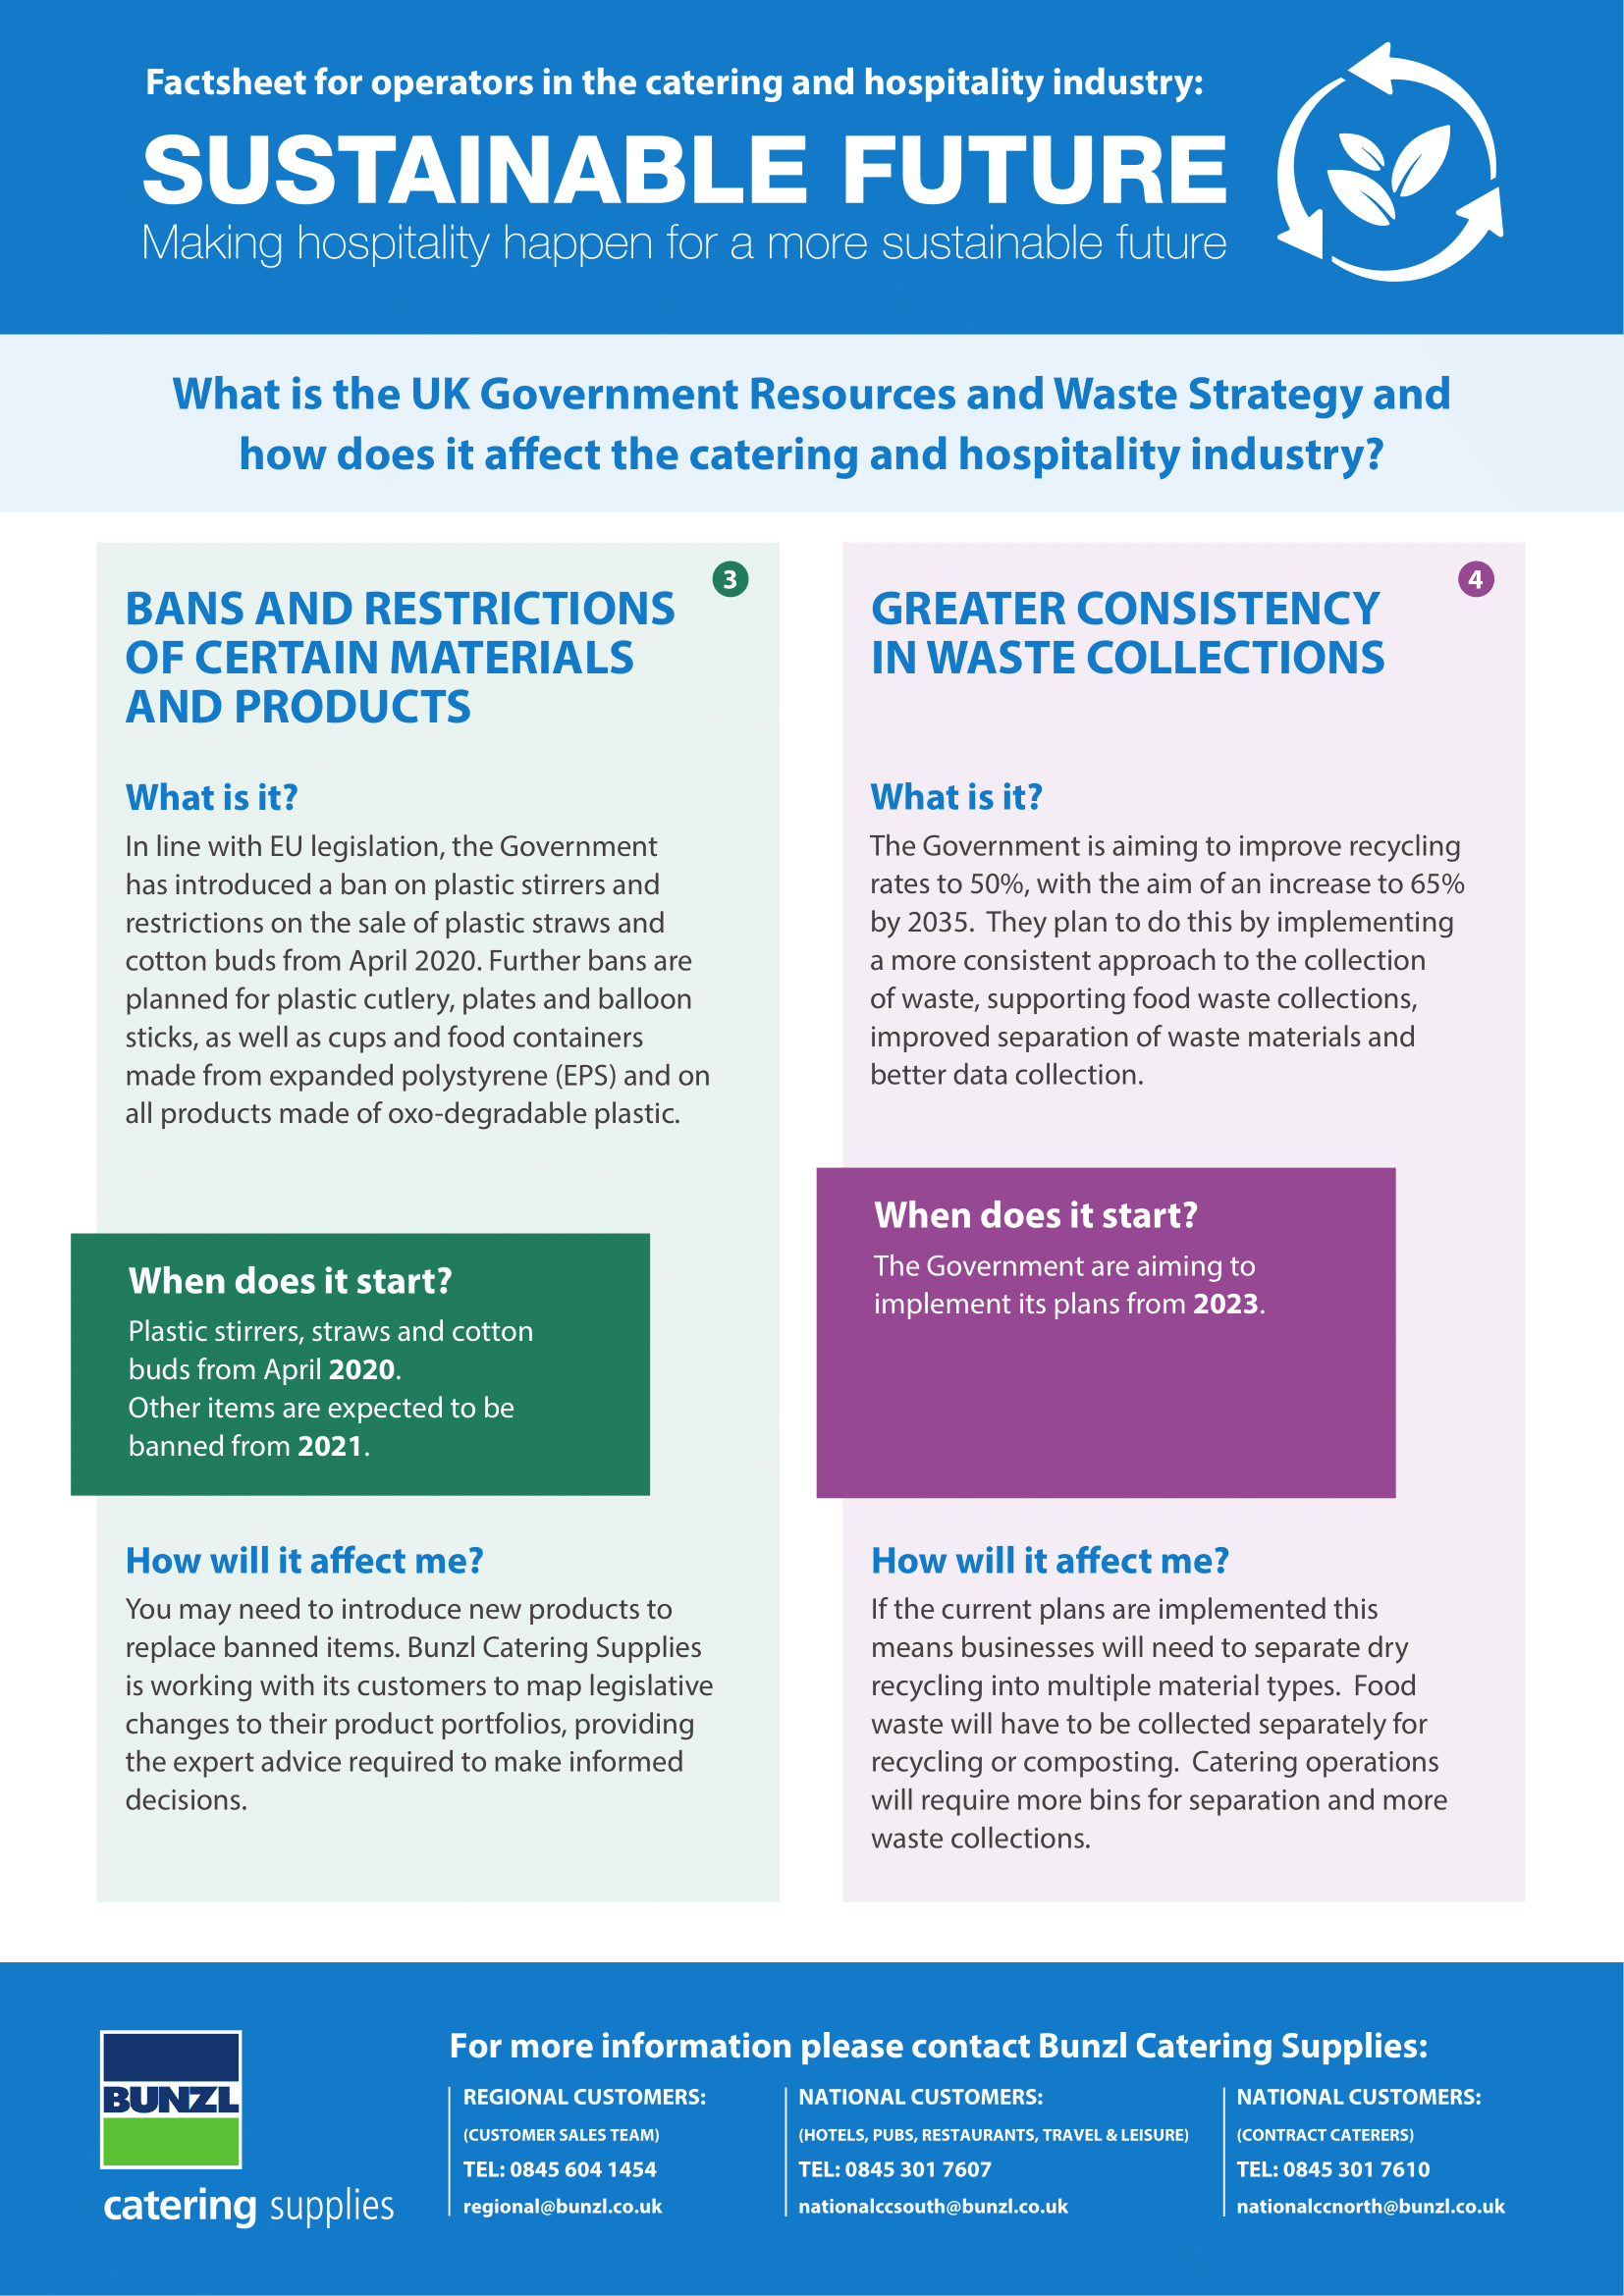 BCS SF UK Resources & Waste Strategy Aug 2019-3.png